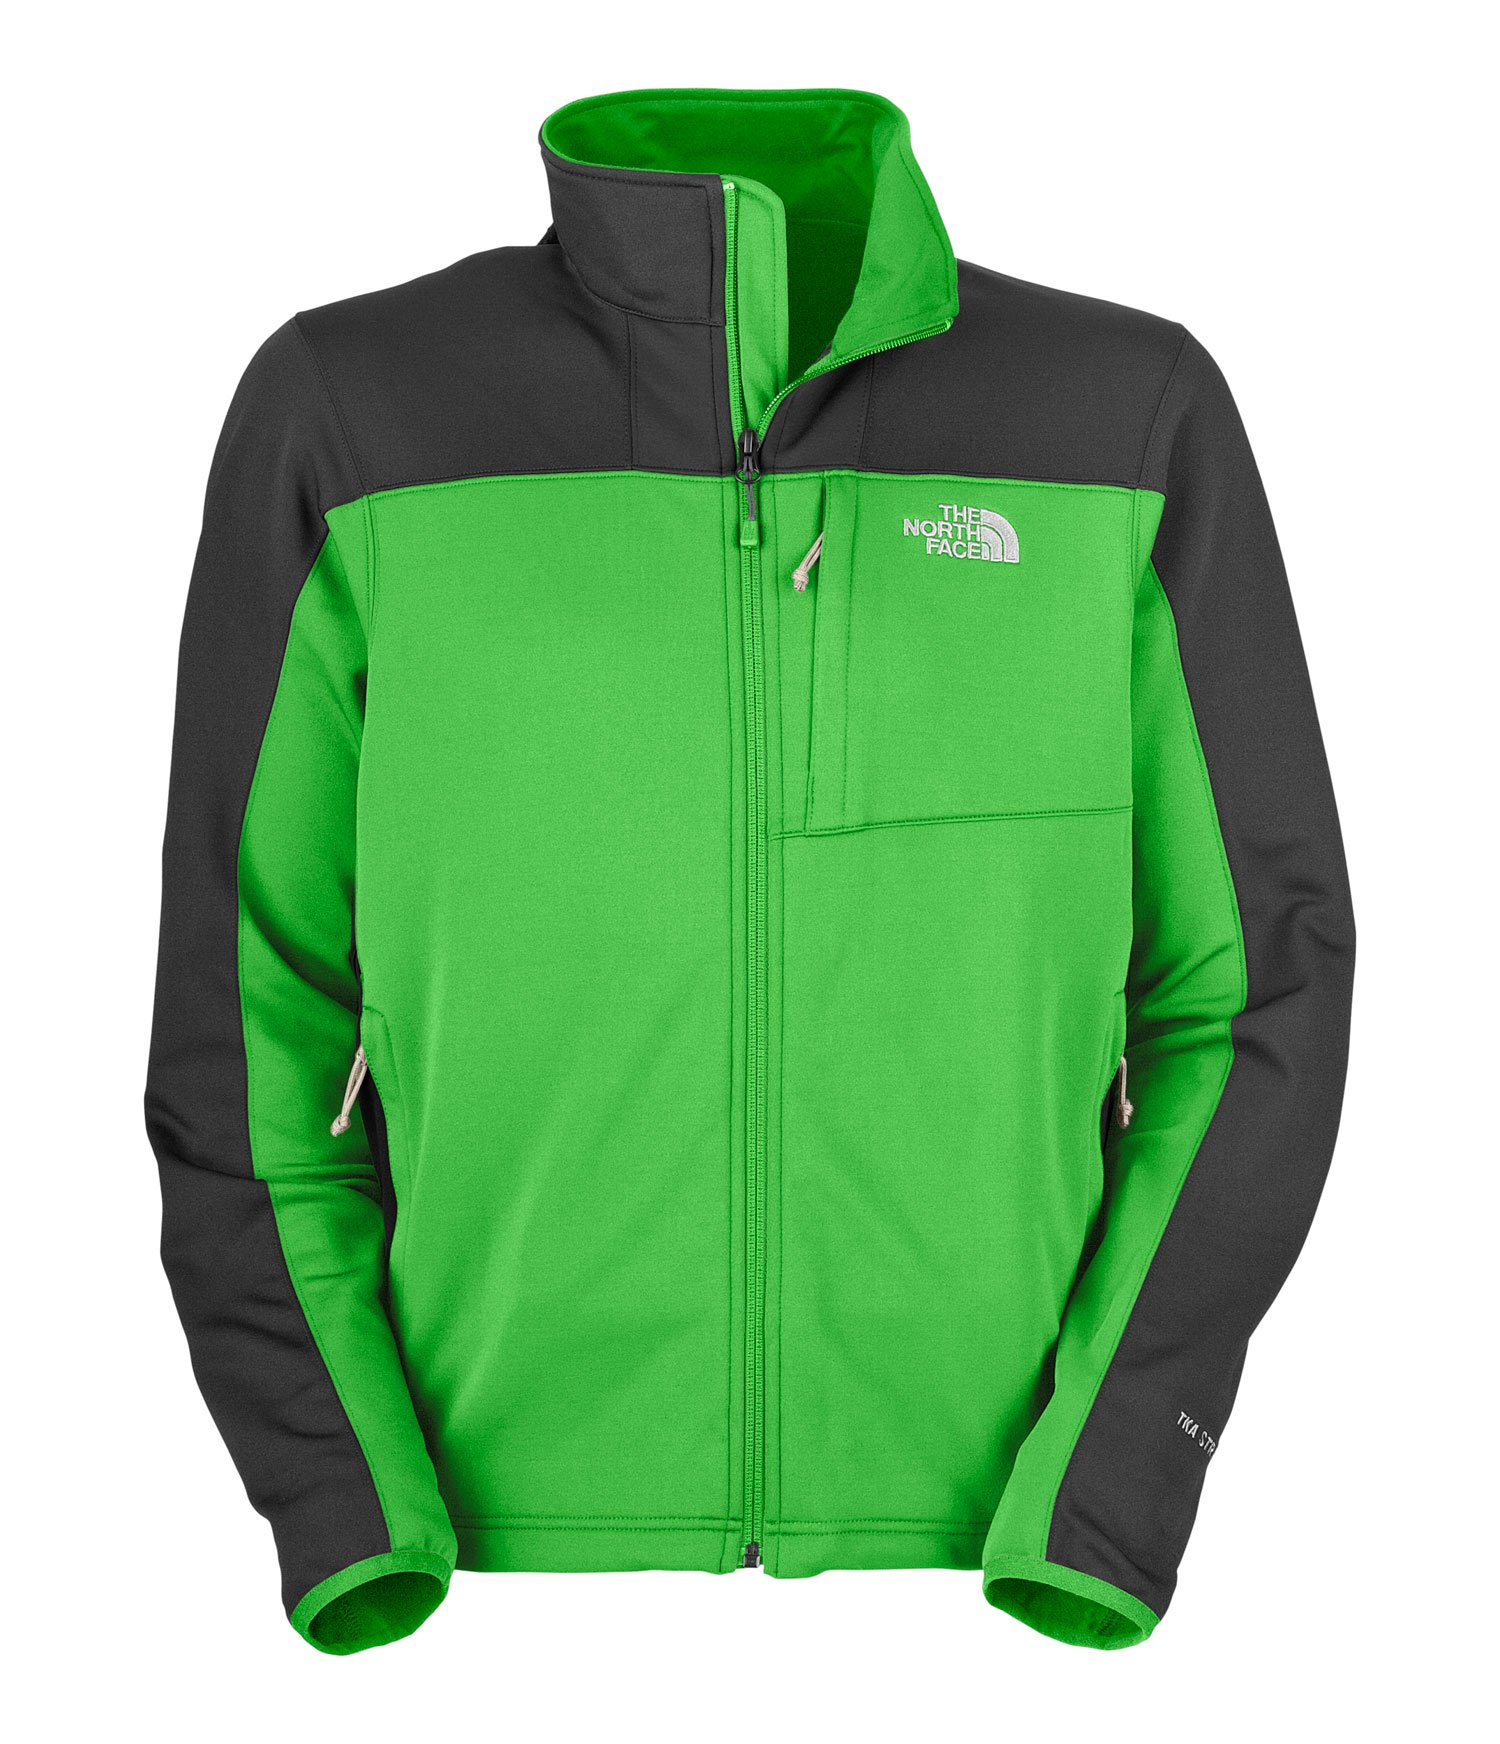 The north face – North face momentum mens fra billigsport24